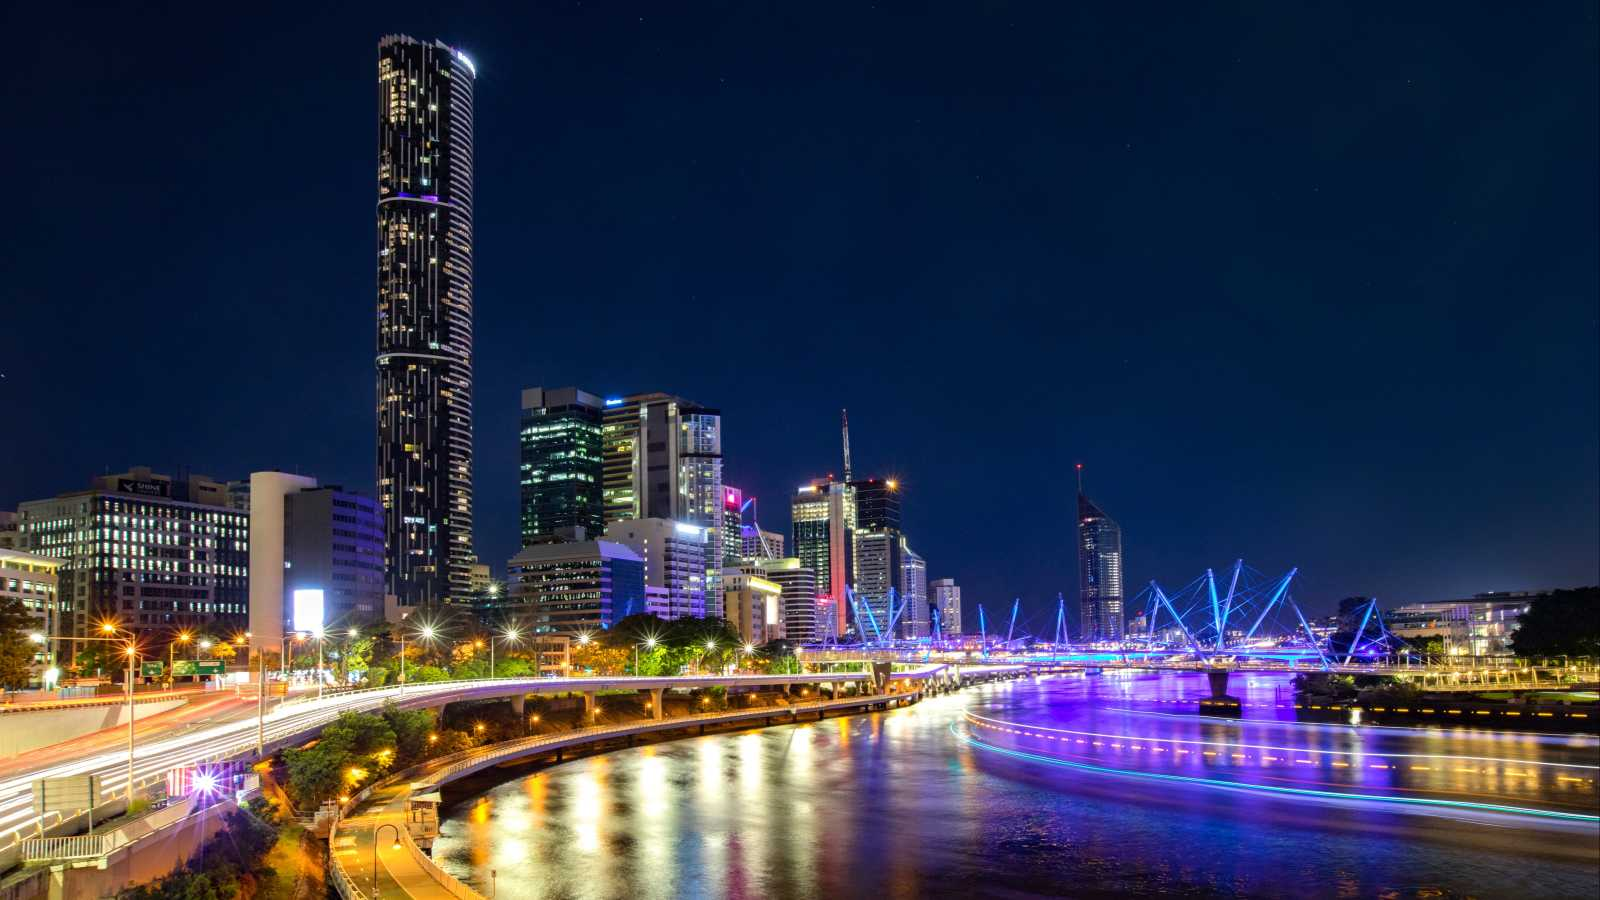 Brisbane's skyline at night.